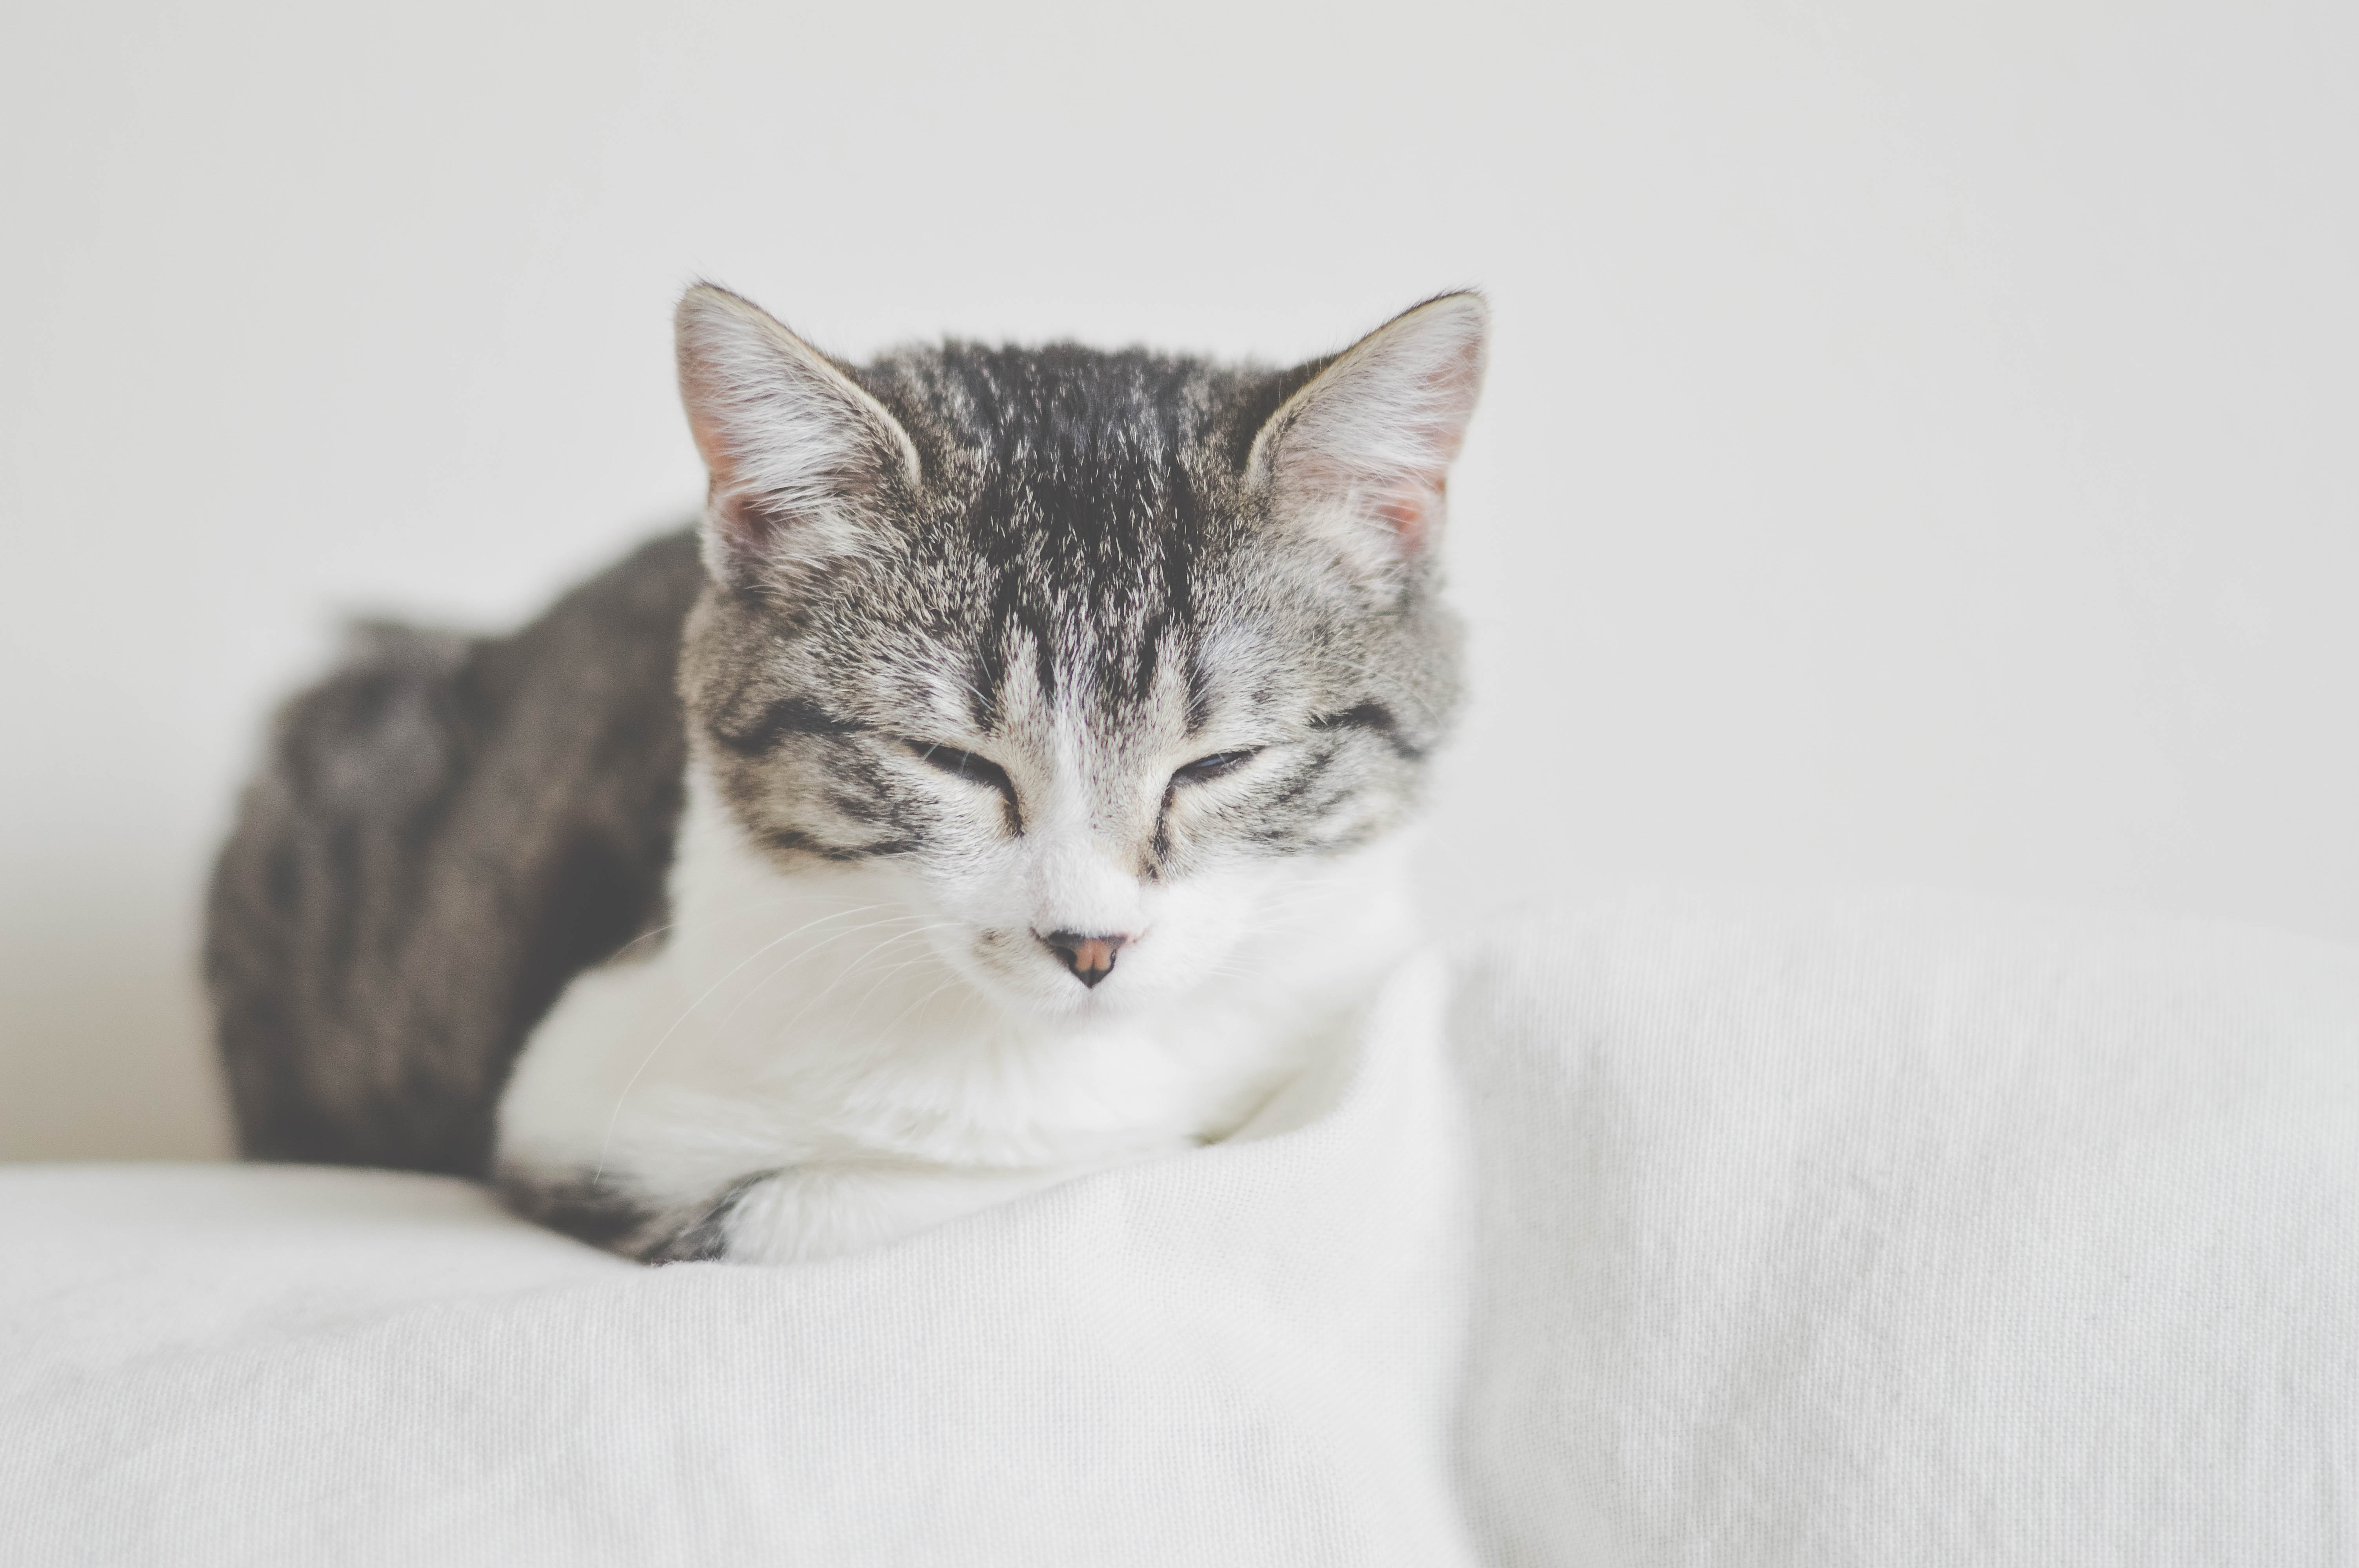 A tabby cat dozing off on top of a white sofa